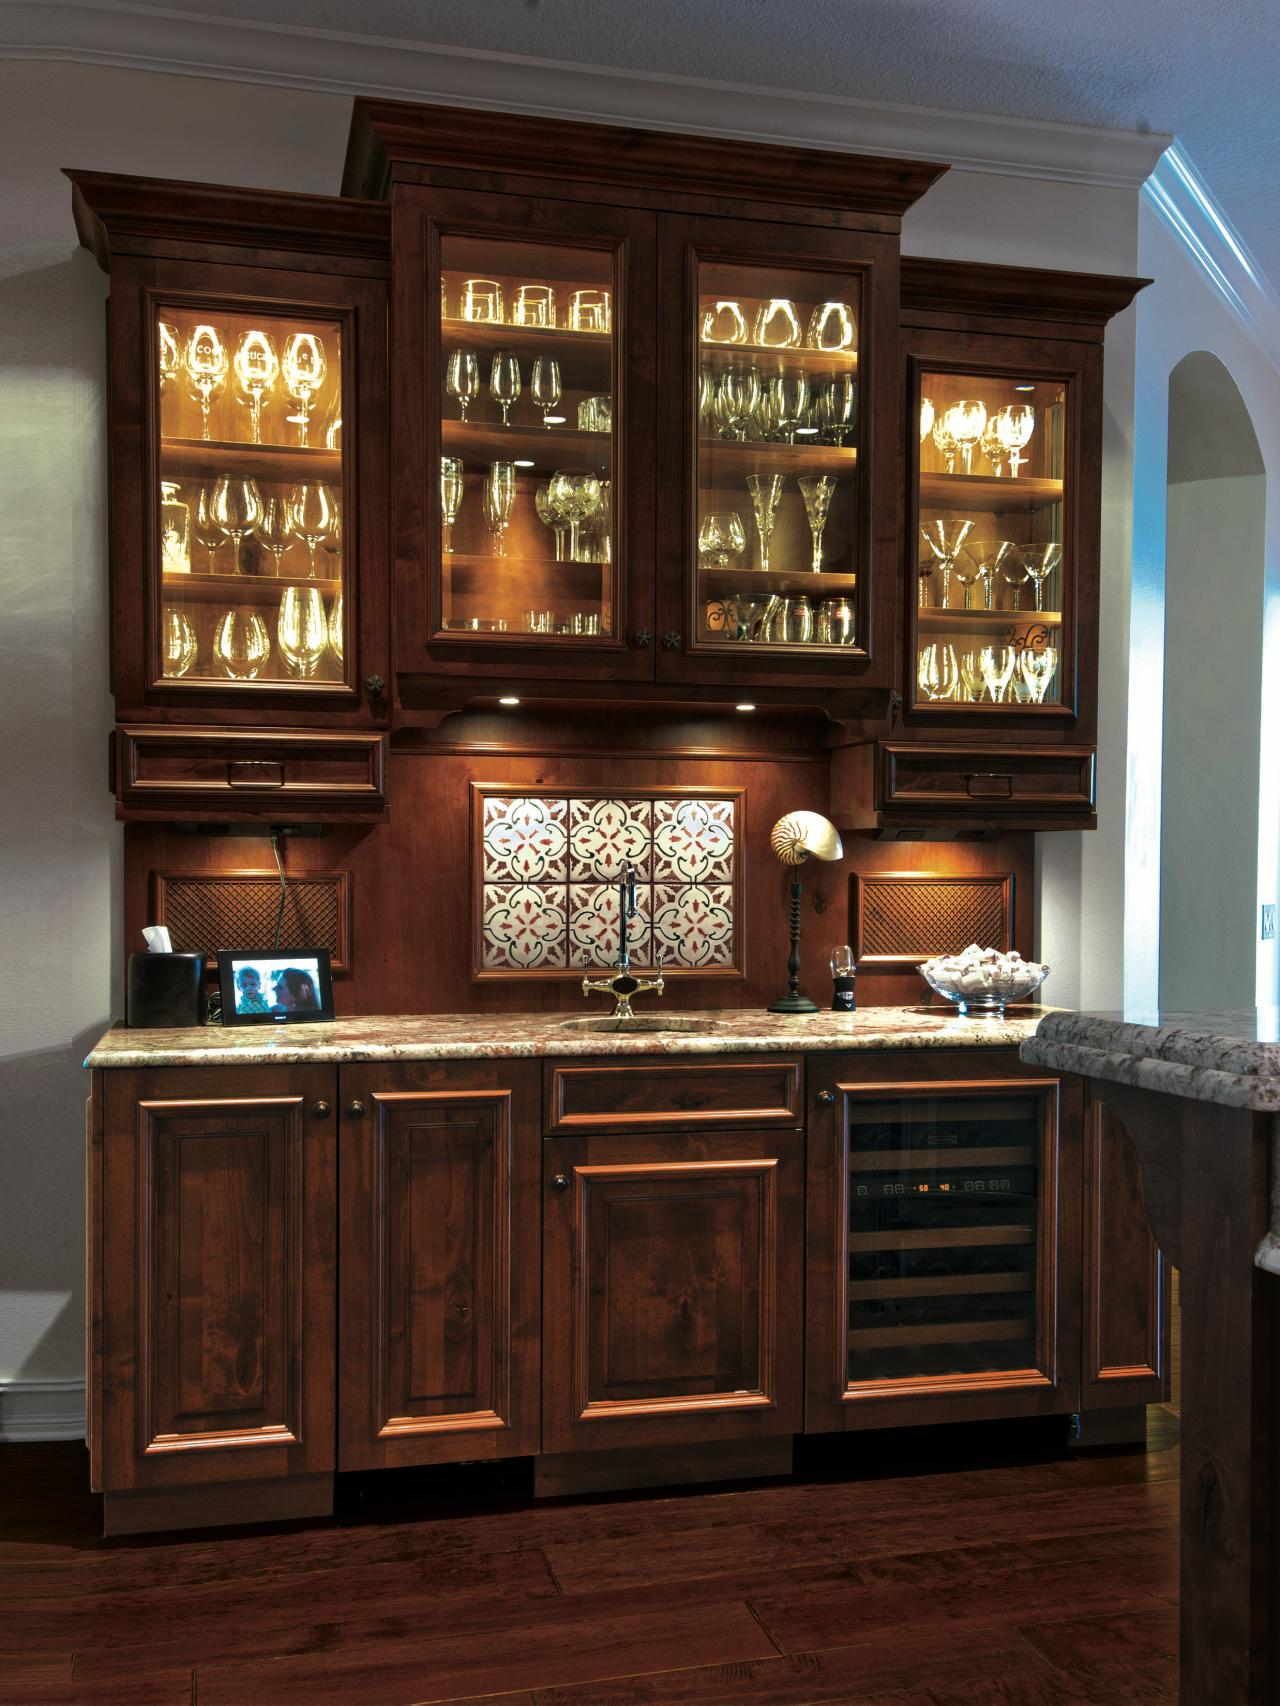 The Entertainer 39 S Guide To Designing The Perfect Wet Bar